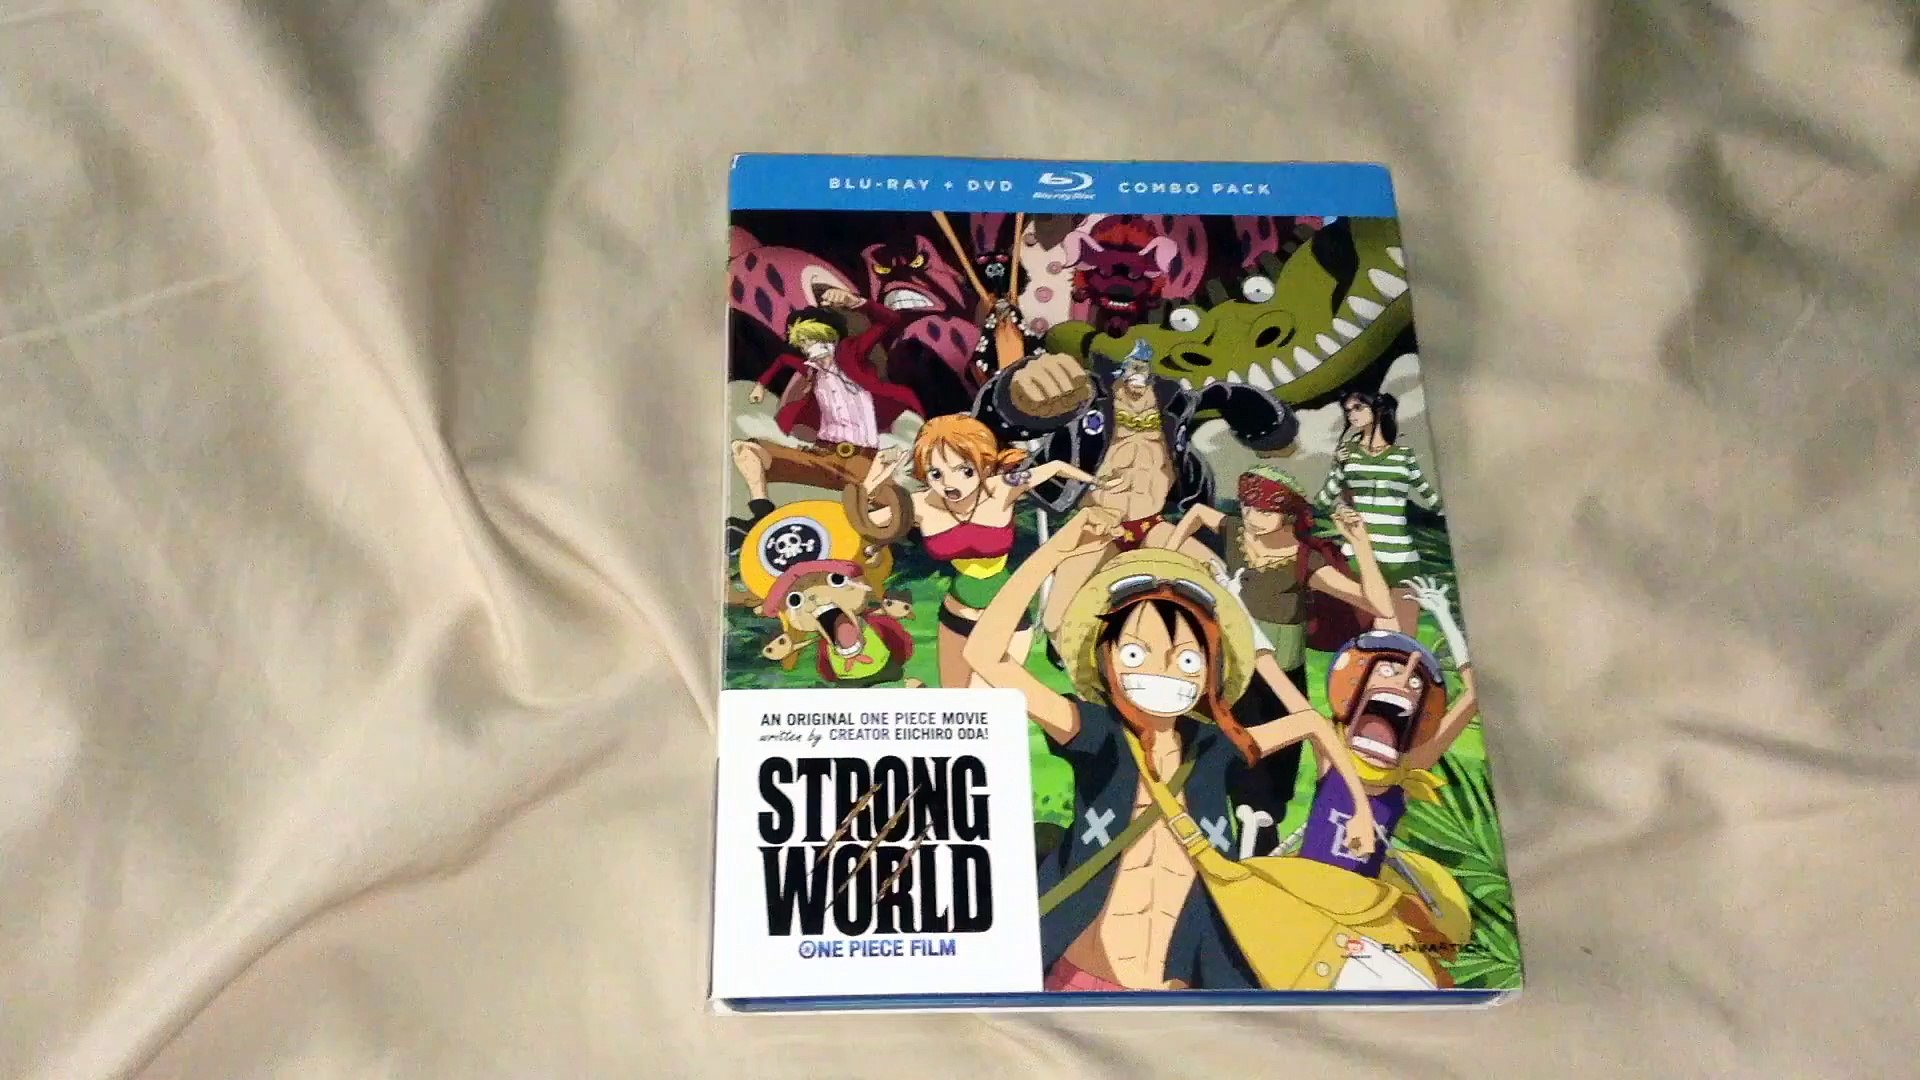 One Piece Film Strong World Blu Ray Dvd Unboxing Video Dailymotion